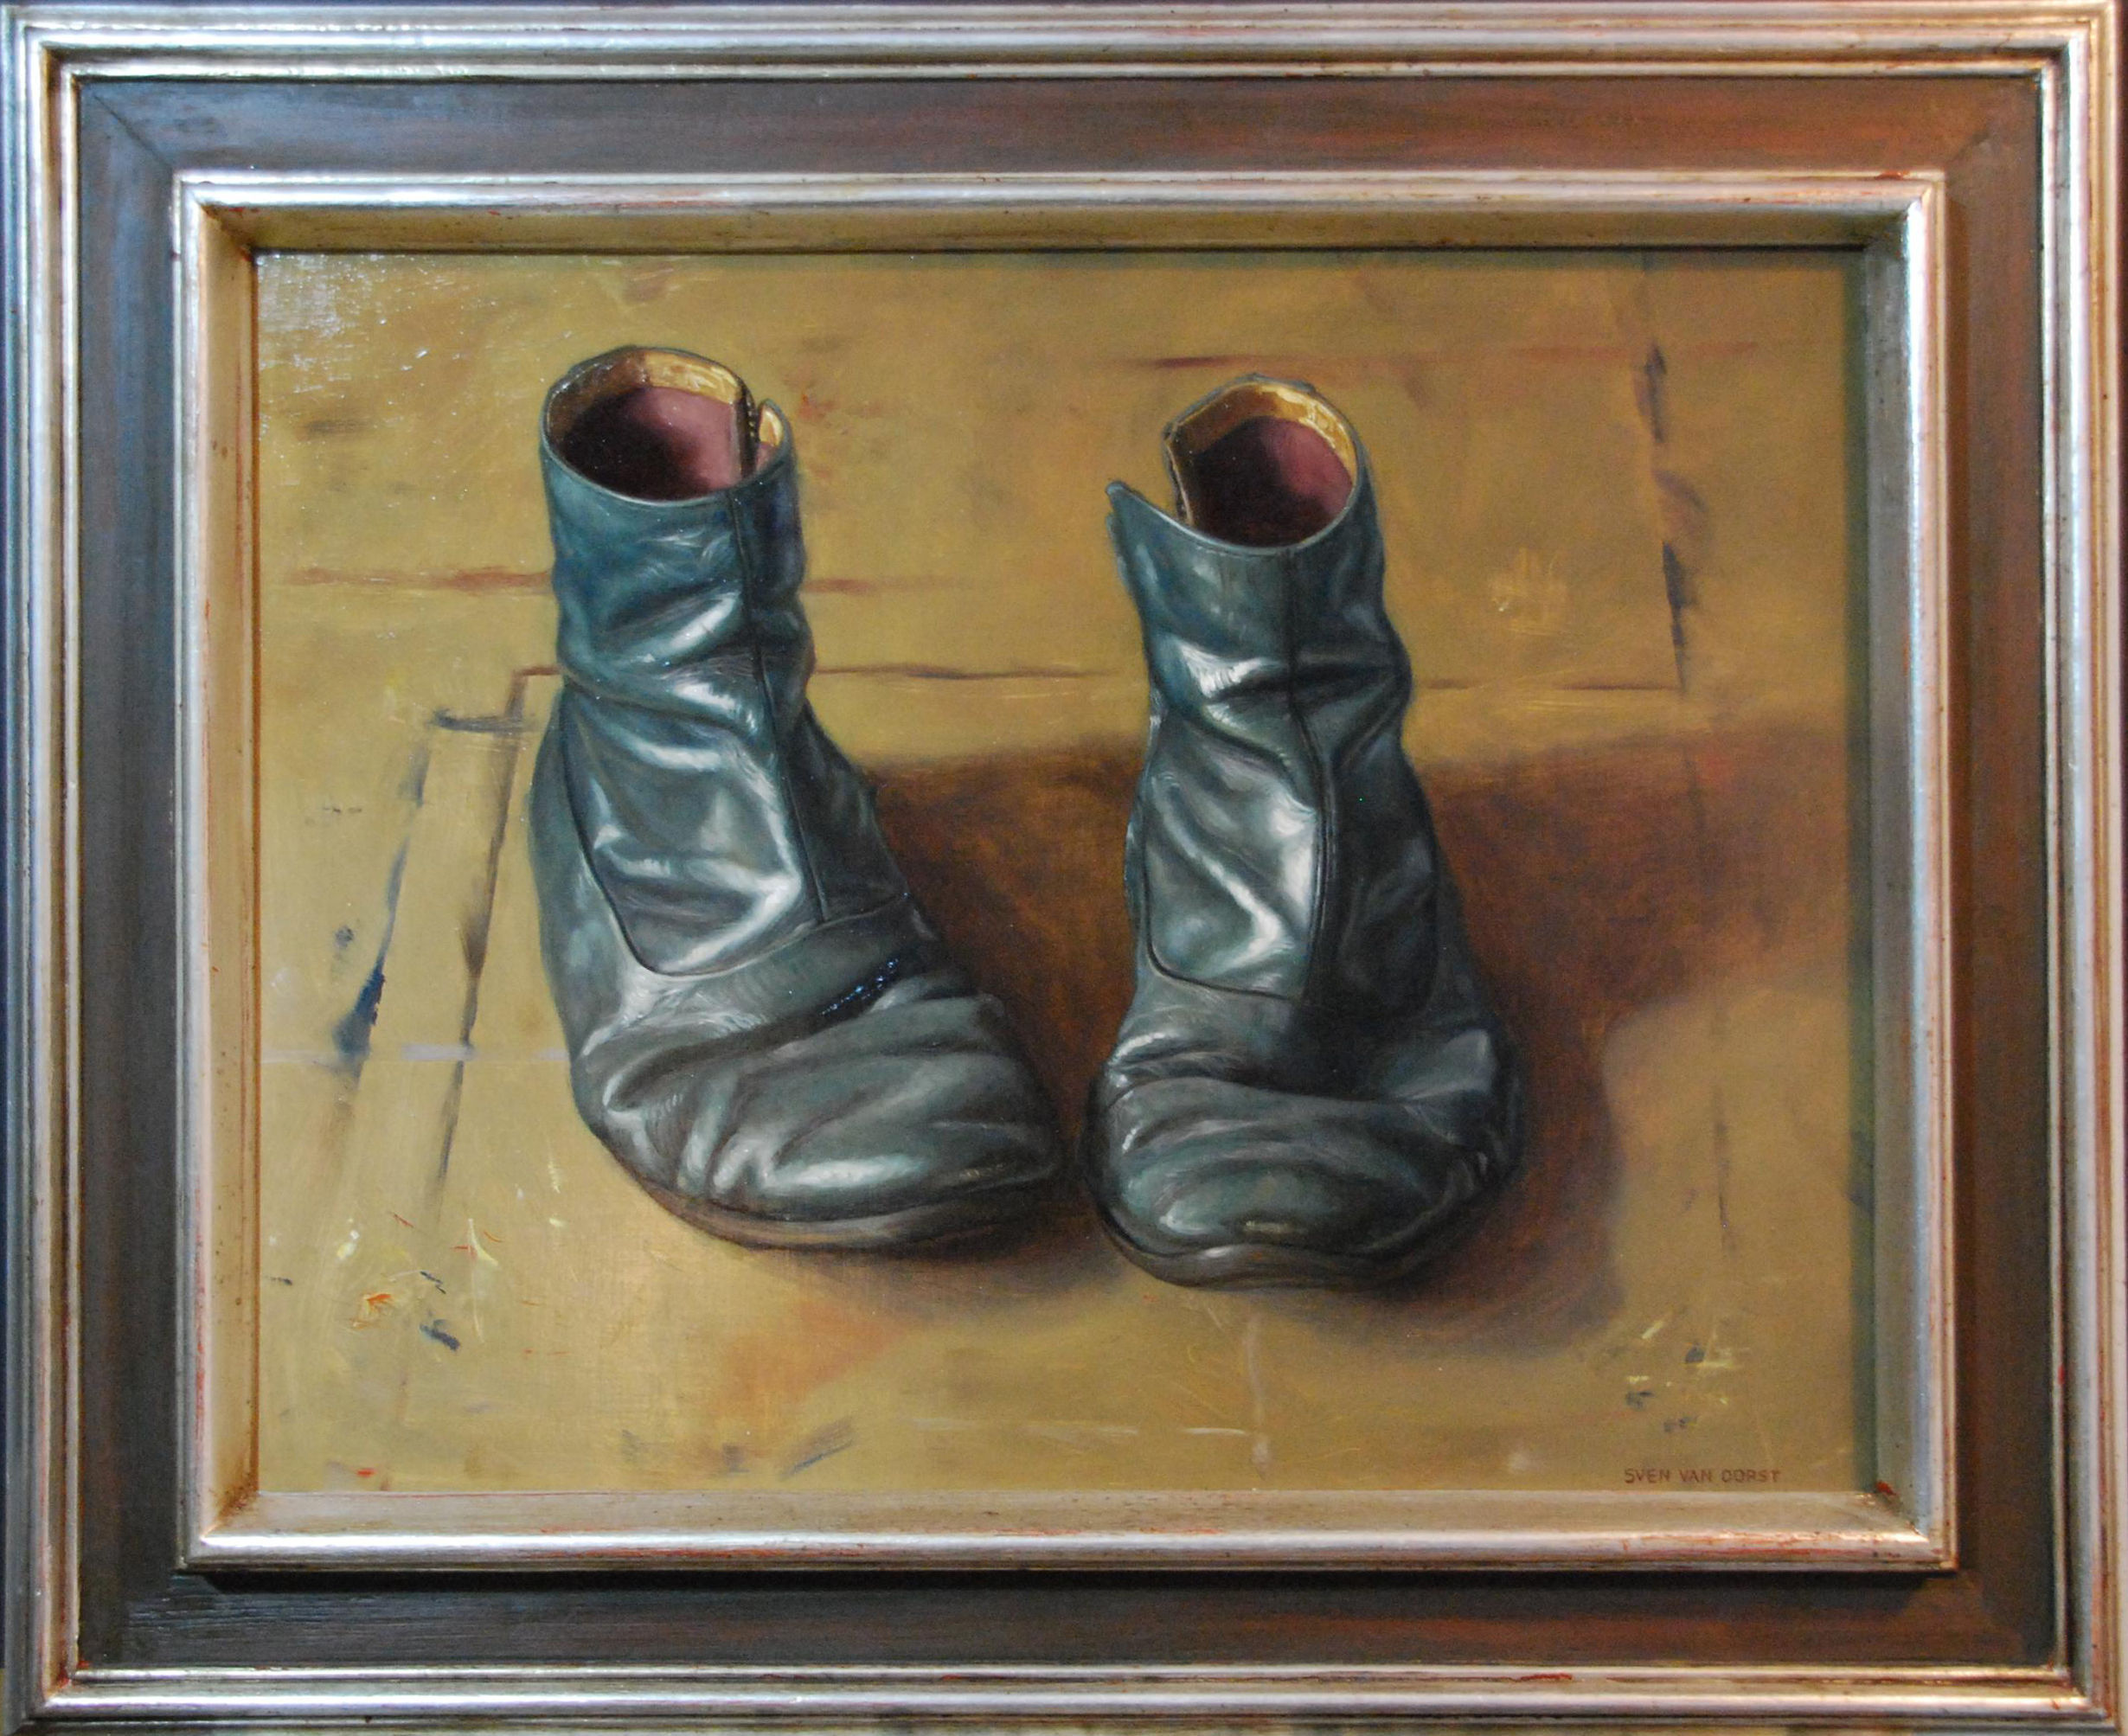 Sven van Dorst Oliver's shoes  Oil on pannel 50 x 60  London, Phyllis Roberts Award (ROI) 2014